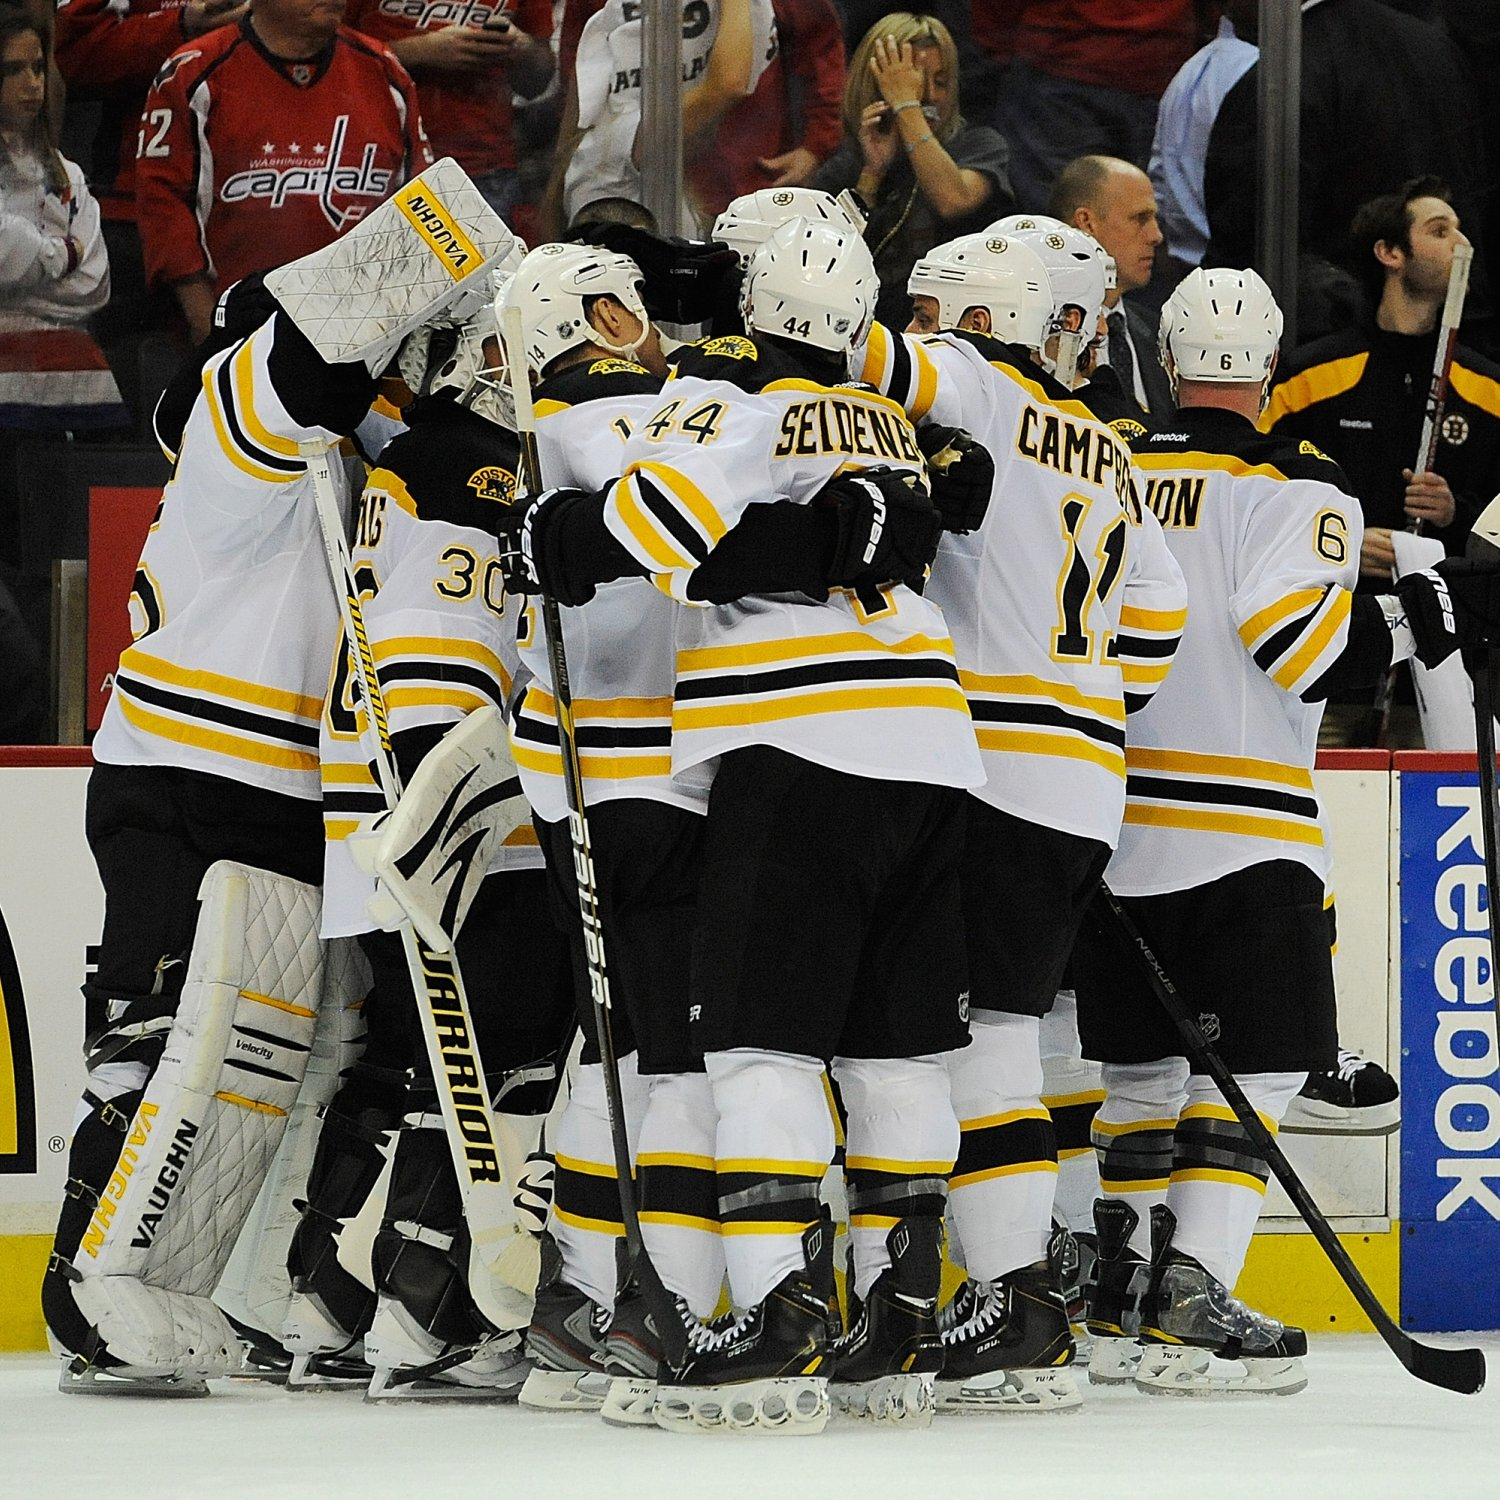 Stanley Cup Playoffs 2012: Boston Bruins Take Game 3